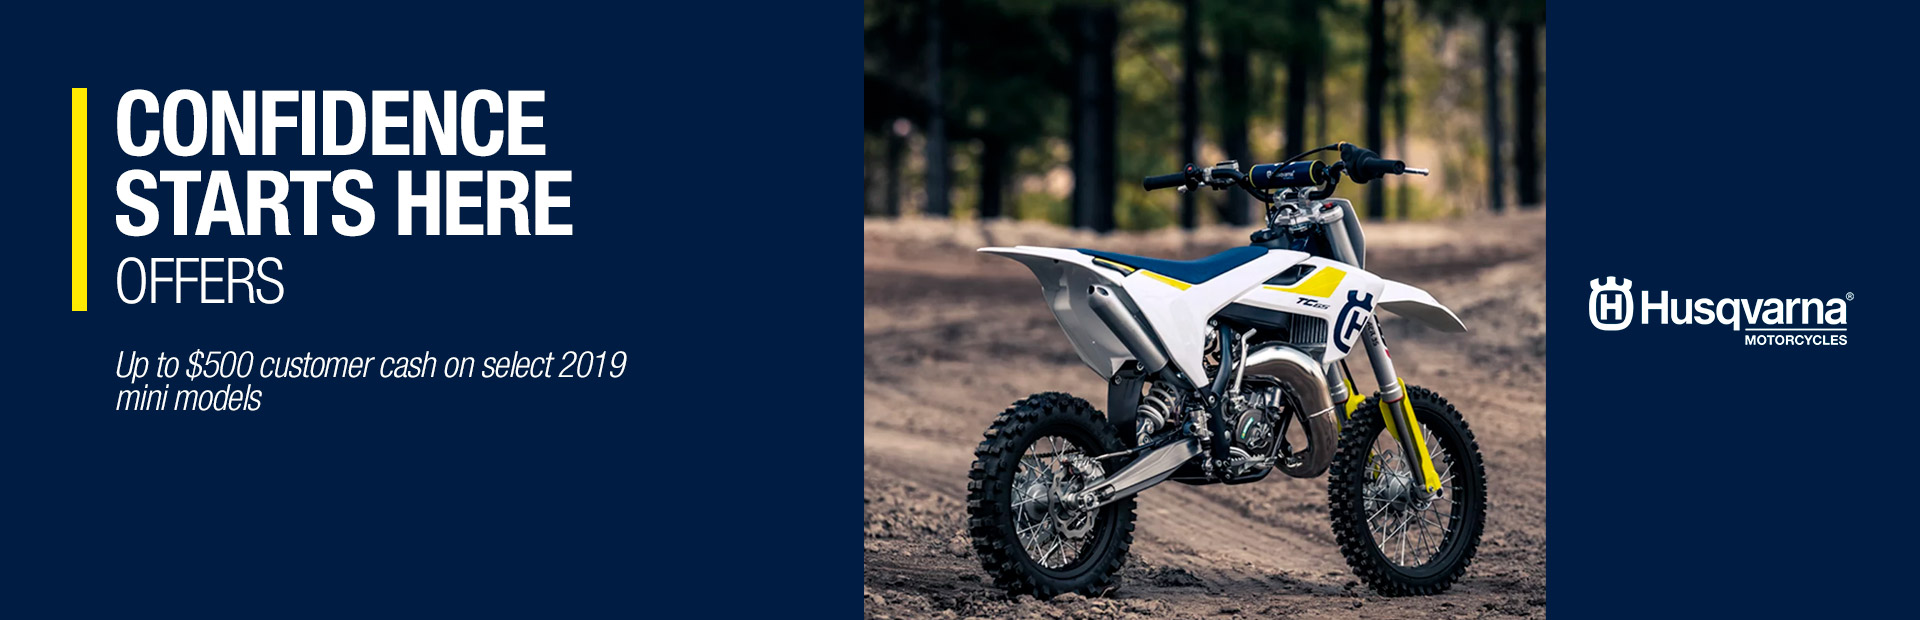 Husqvarna Motorcycles: CONFIDENCE STARTS HERE